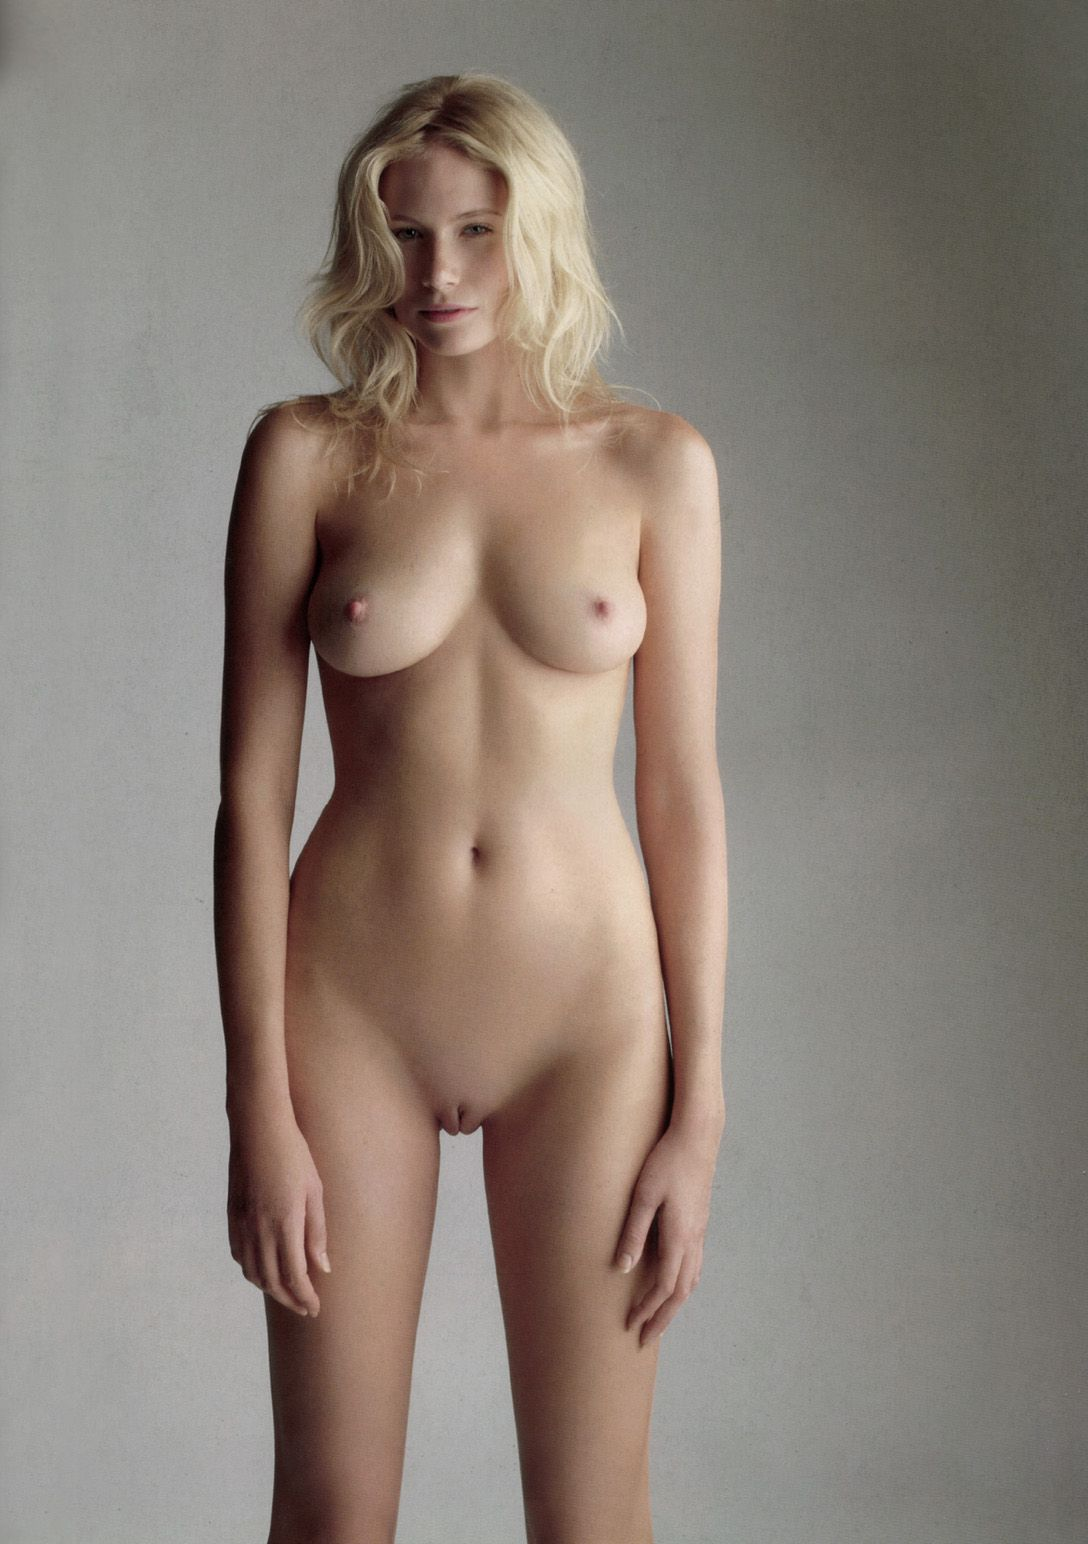 naked pictures of heroines